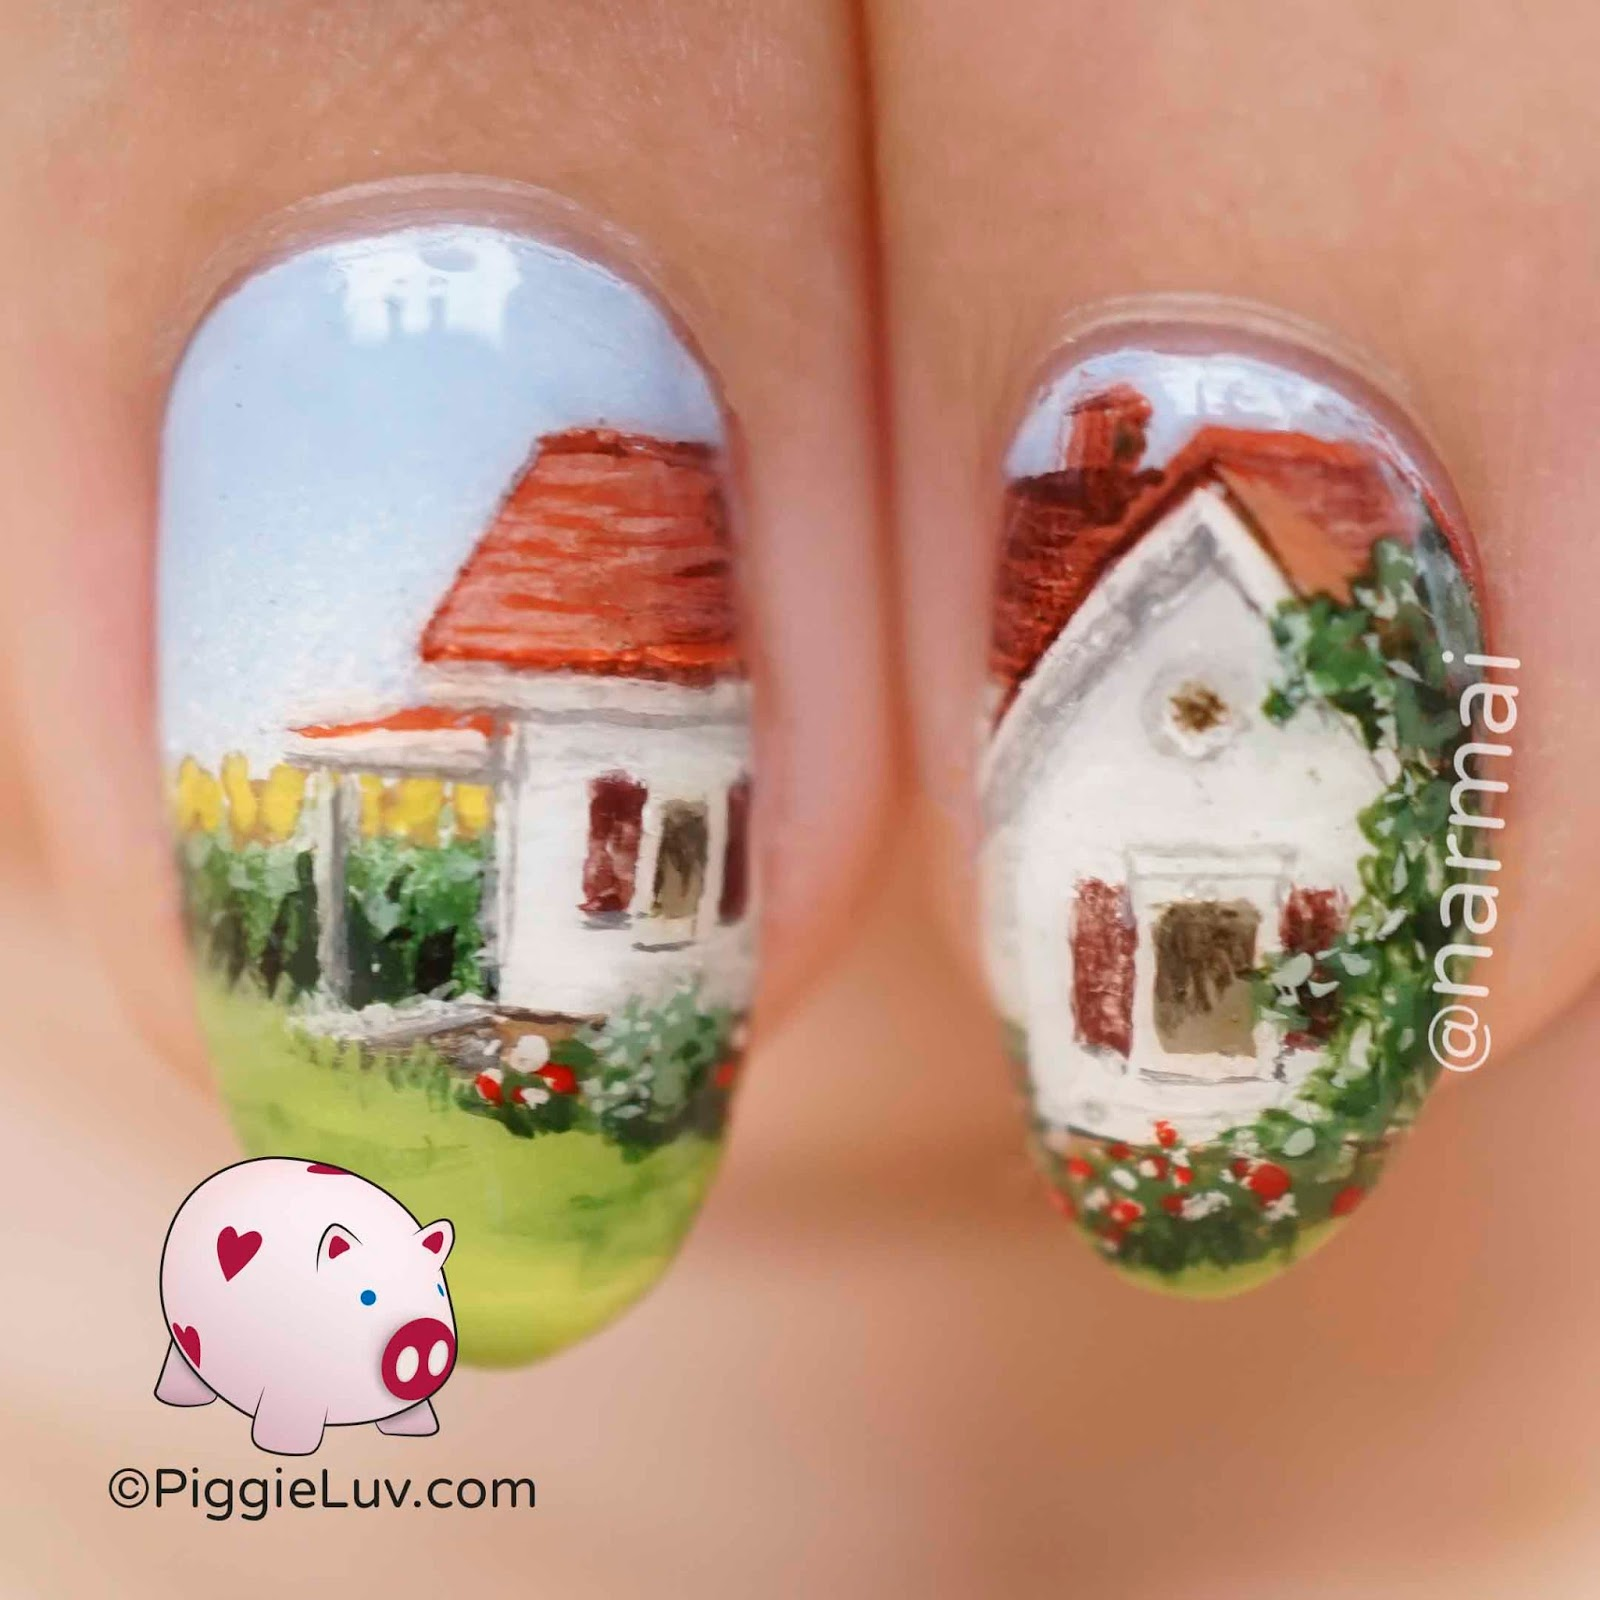 Piggieluv summer in the countryside nail art did i have bionic eyes while painting this design im not sure how everything turned out so sweet detailed and painter ish yes i just made that a word prinsesfo Images